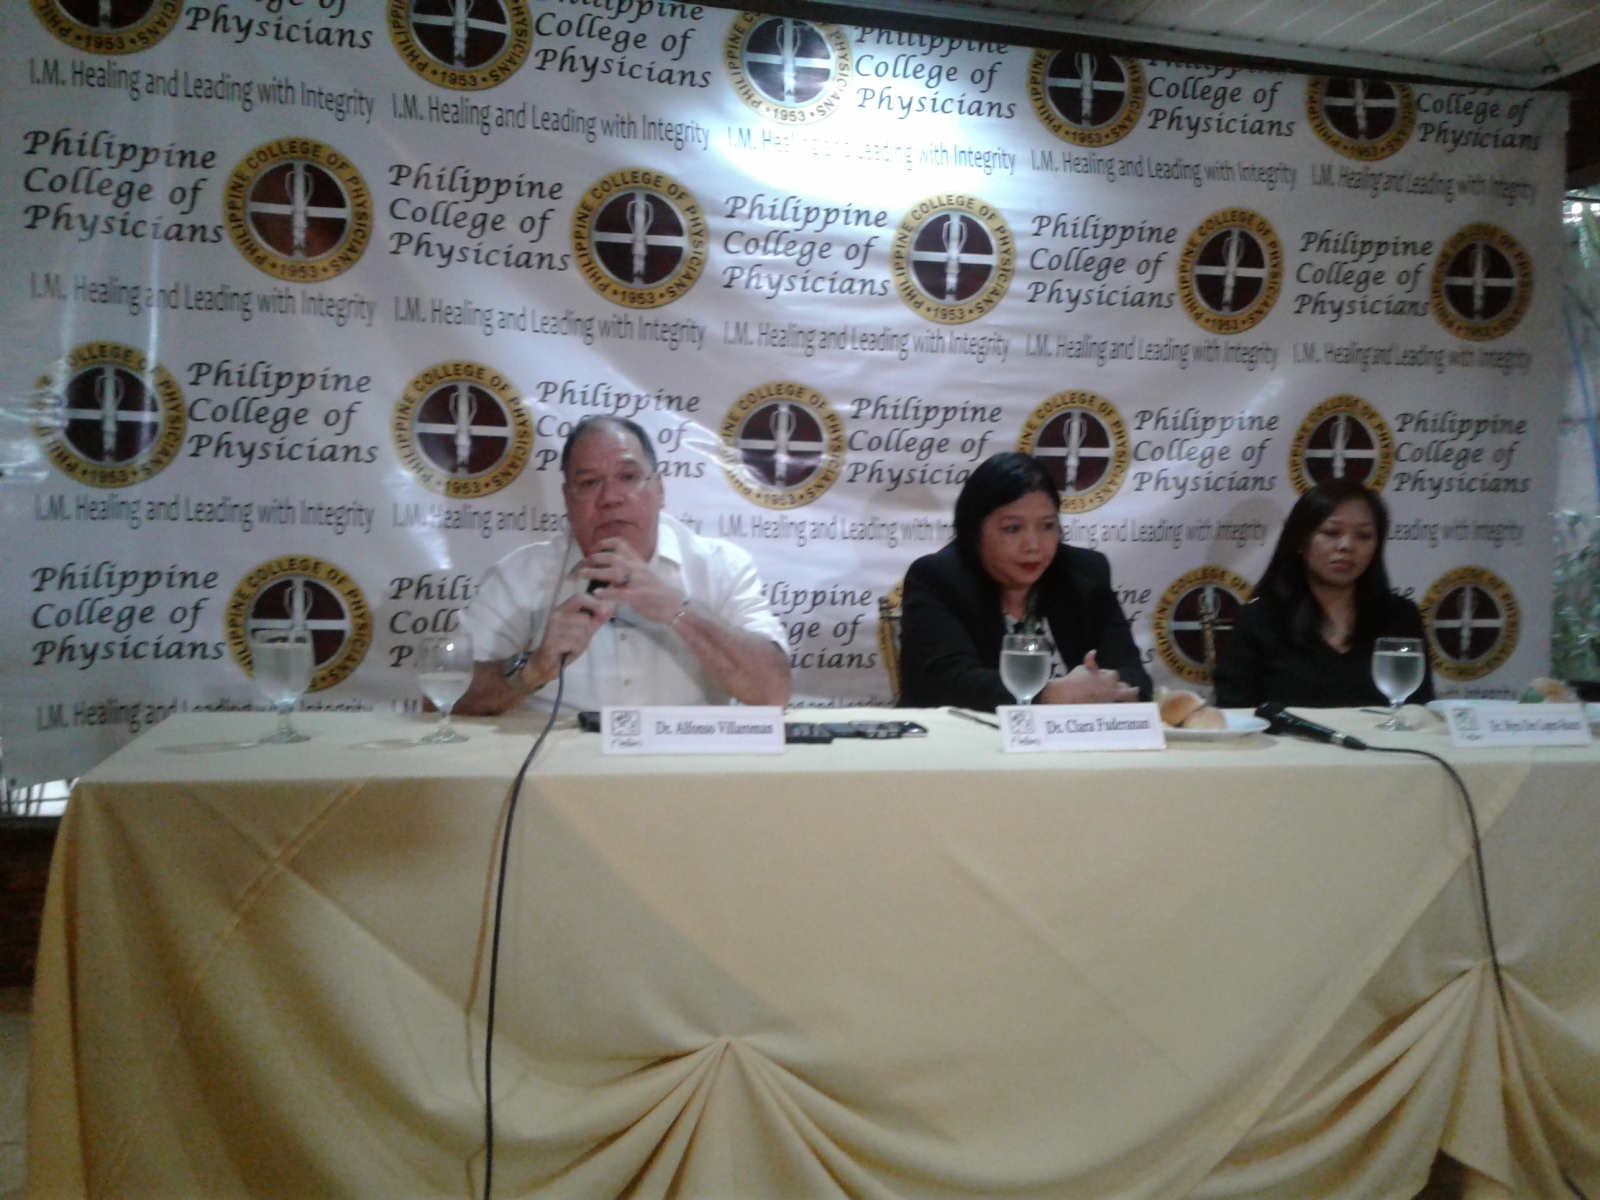 Dr. Alfonso Villaroman (left), special assistant to Department of Health (DOH) Assistant Secretary Elmer G. Punzalan, explains why the Health Department is conducting community-based training program among doctors from local government units in the National Capital Region (NCR) during the Philippine College of Physicians Health Forum held at Annabel's Restaurant in Tomas Morato Ave., Quezon City on Tuesday (Aug. 2, 2016). He said the training program is designed to strengthen the doctors' knowledge and better understanding on how they can properly assess the drug dependents/users as part of the DOH's intervention programs for the big number of drug surrenderers in the country. Also present in the forum were Dr. Clara Fuderanan (center), a psychiatrist of the Philippine College of Addiction Medicine (PCAM) and another official of the DOH in its Drug Treatment and Abuse Program; and Dr. Myra Dee Lopez-Roces from the Philippine Psychiatric Association. (Photo: Johnny Guevarra/PNA)